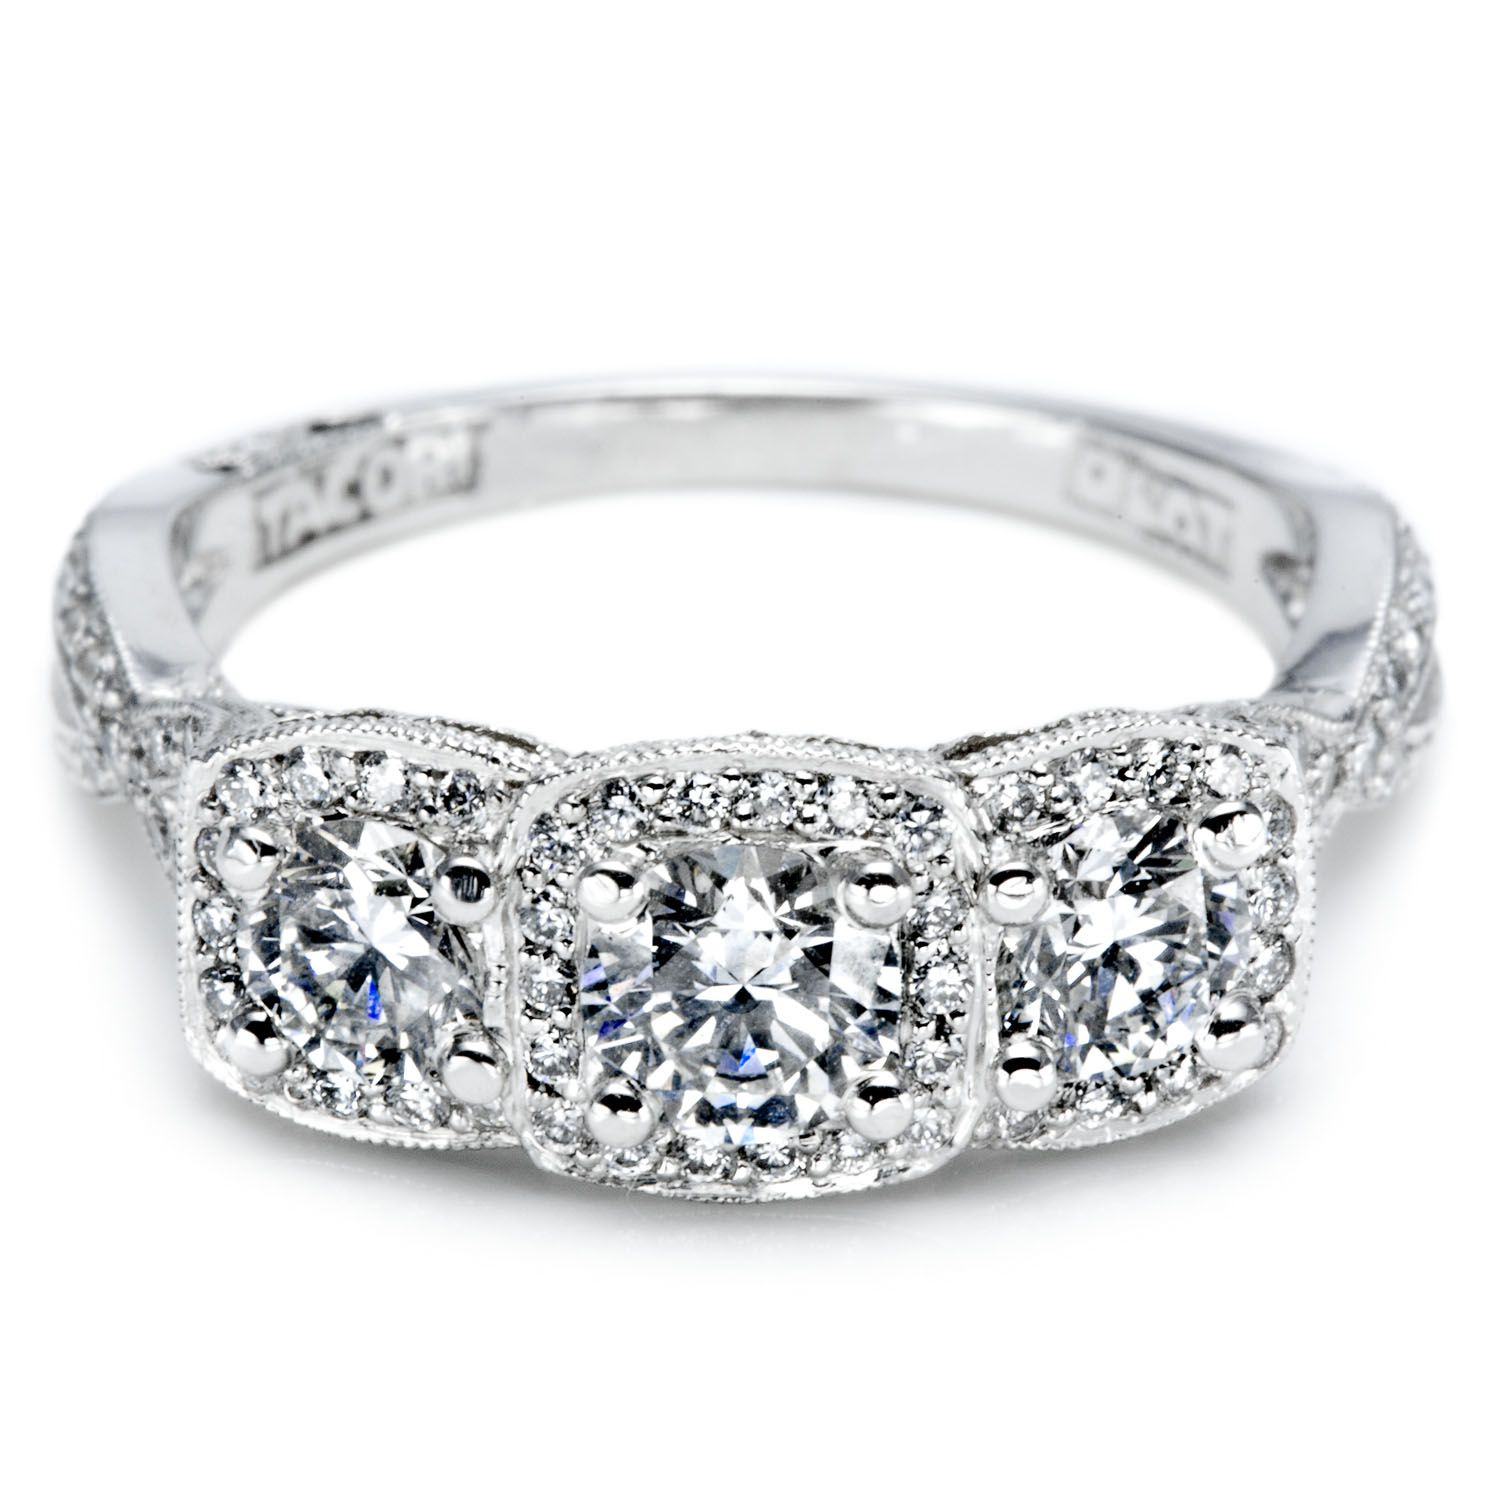 Unique Diamond Anniversary Rings | View Some Examples Of With Best And Newest Enhanced Black And White Diamond Three Row Anniversary Bands In White Gold (Gallery 1 of 25)